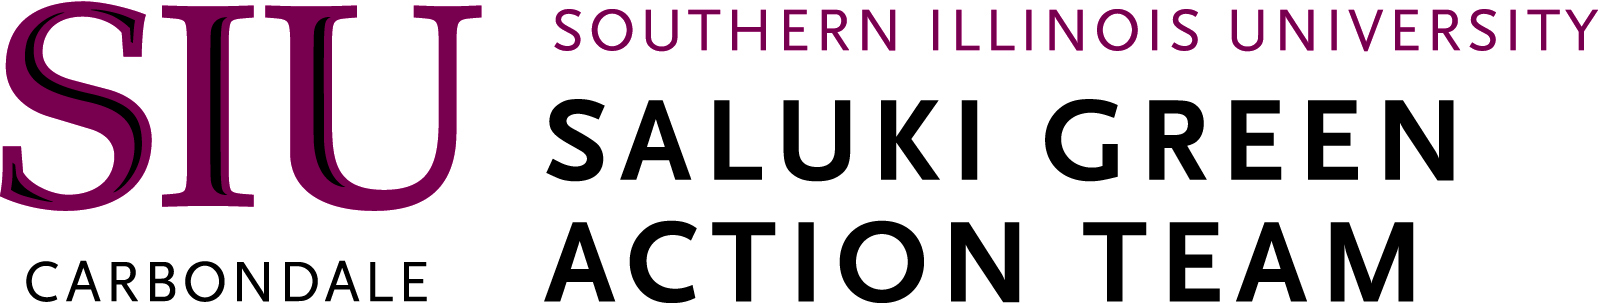 Saluki Green Action Team identifier